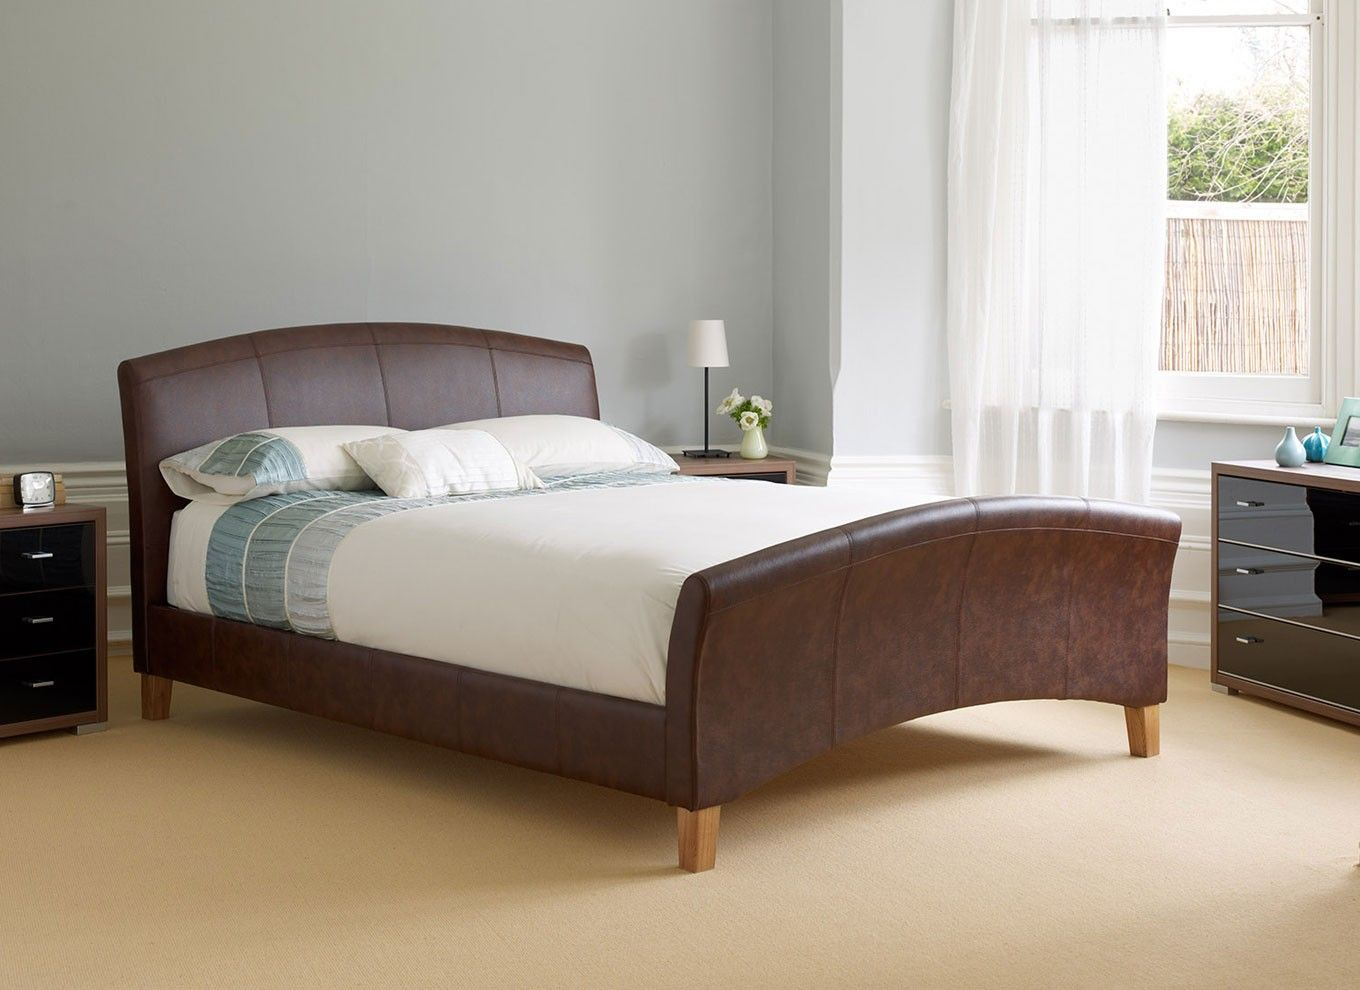 Riva Bedstead Dark Tan My new bed!! Cool bed frames